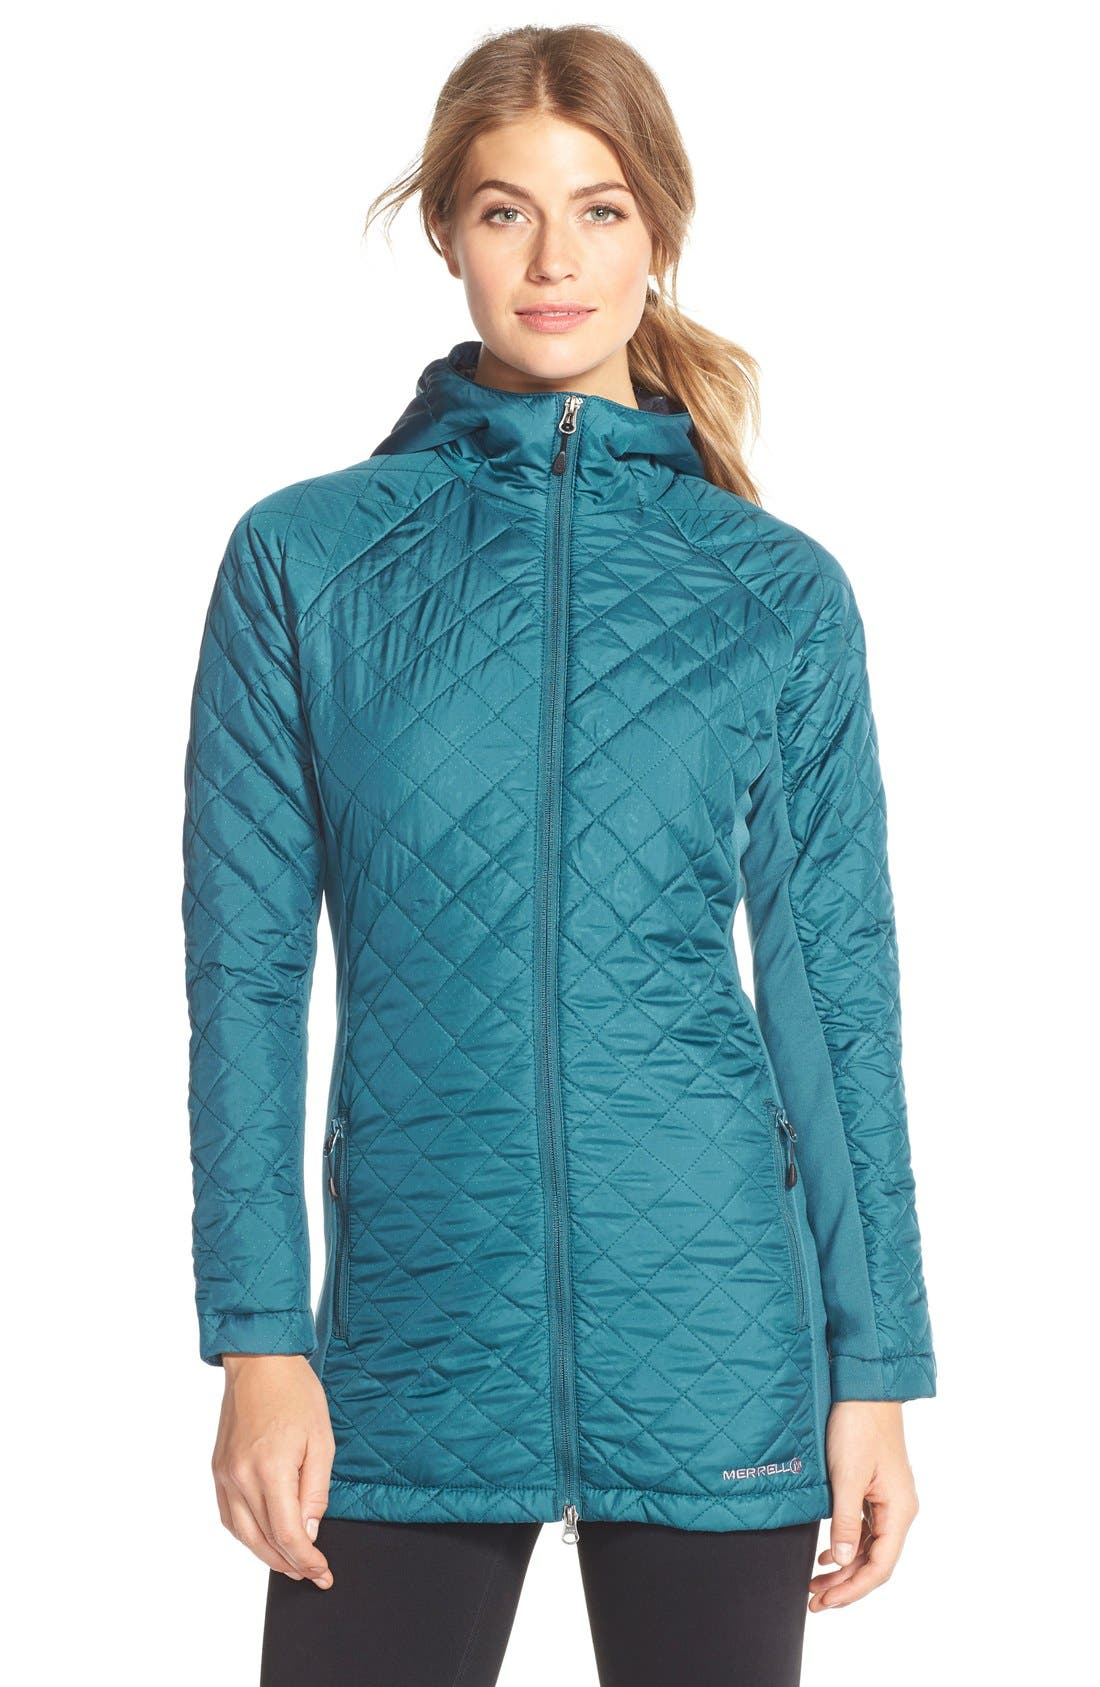 Alternate Image 1 Selected - Merrell 'Soleil Mixer' Hooded Quilted Long Coat